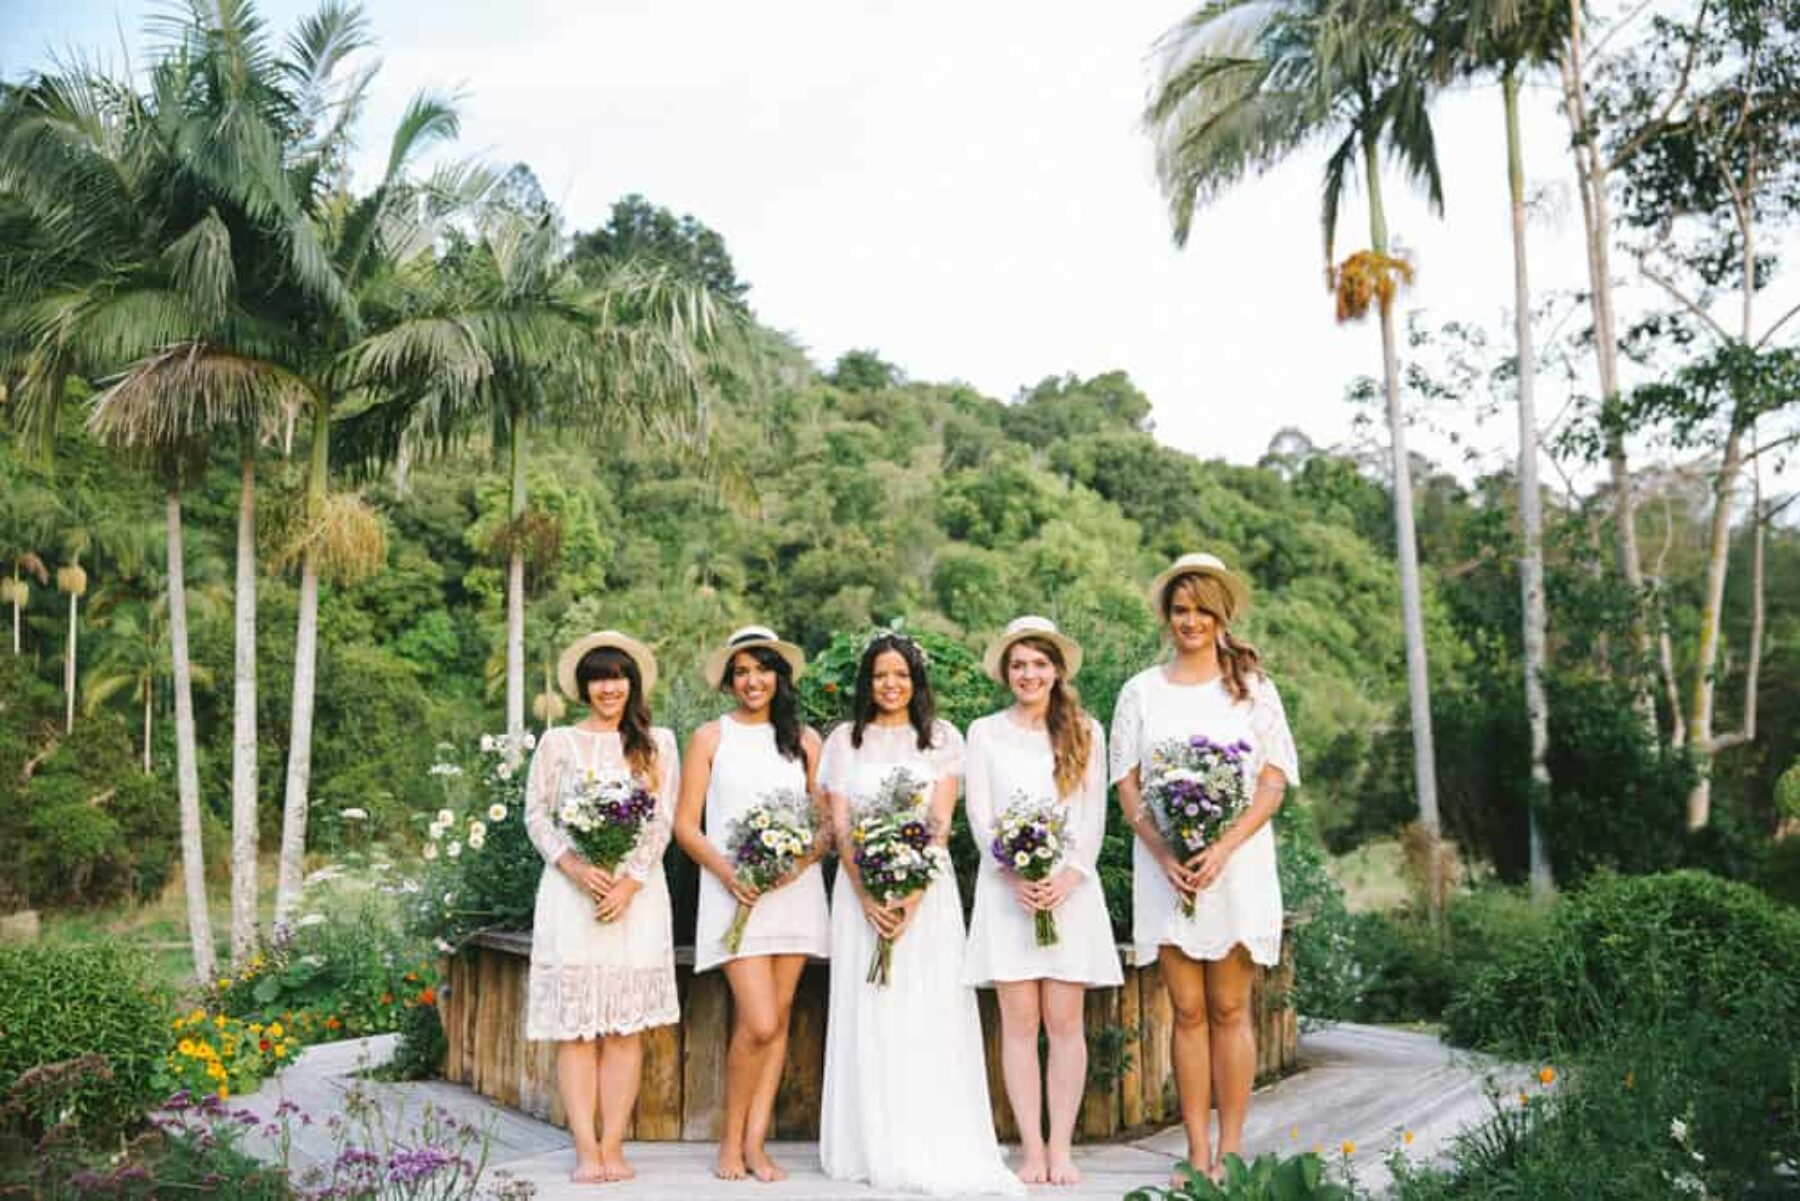 bridesmaids in white dresses and hats